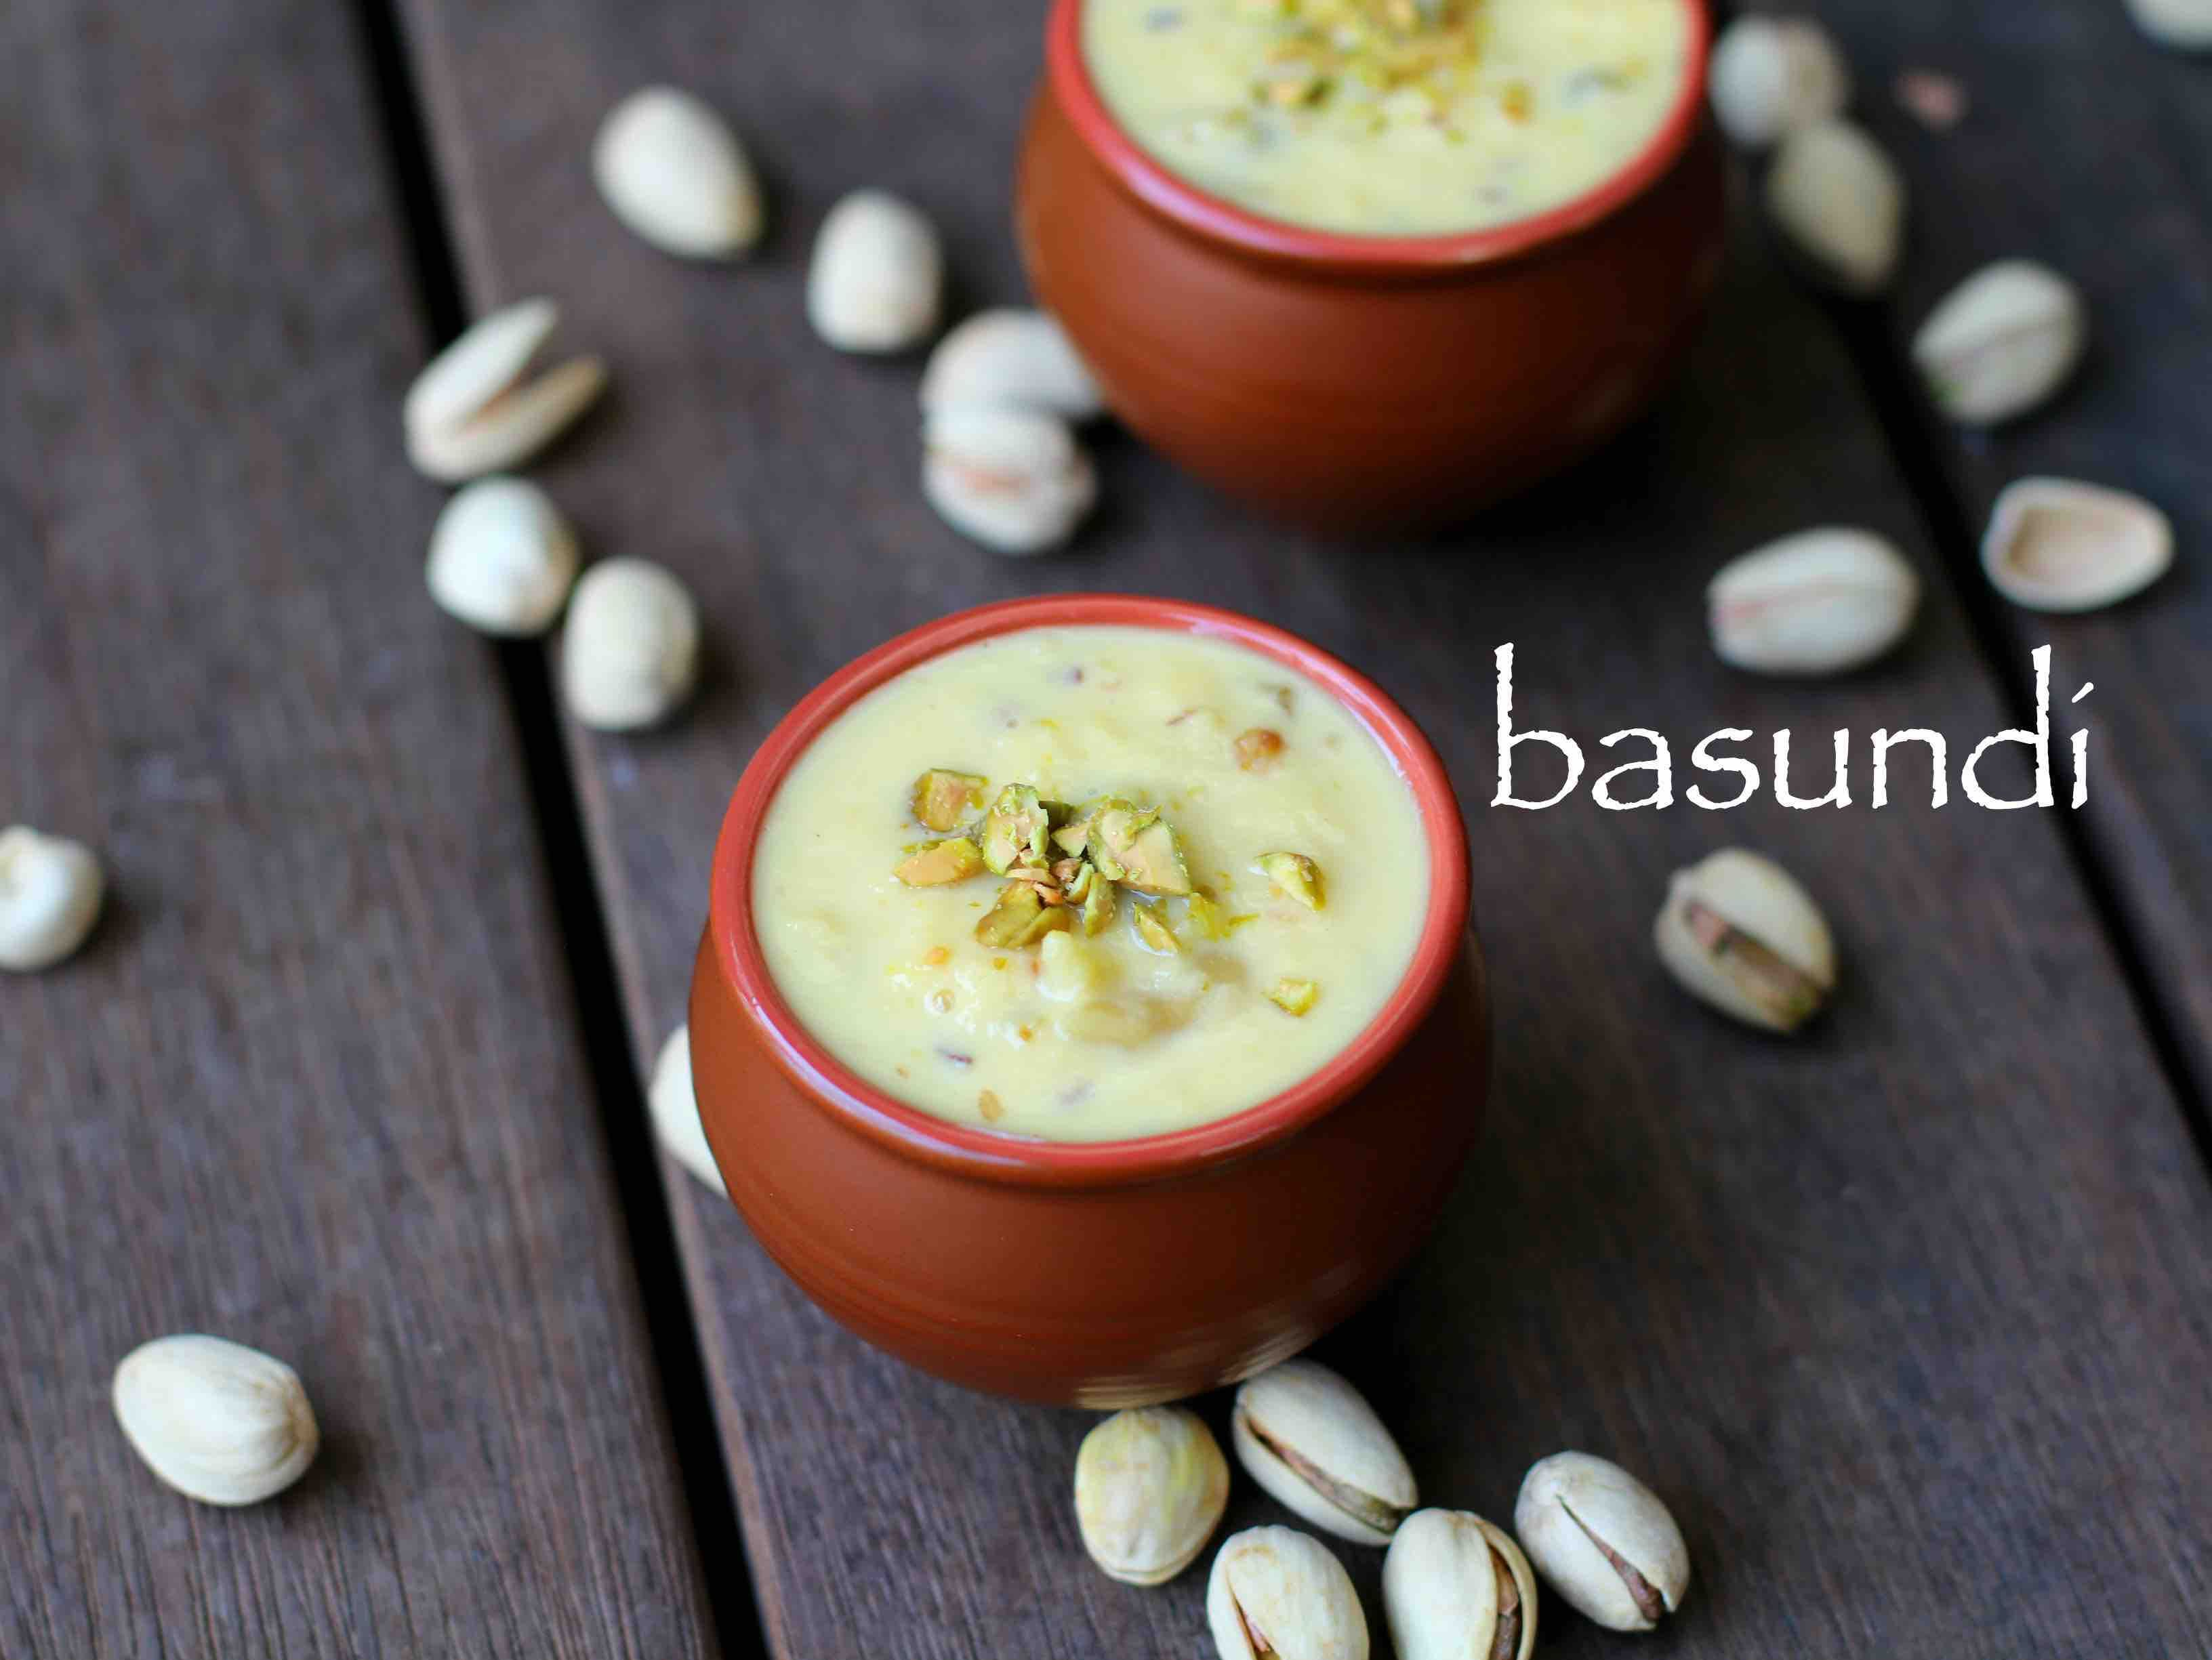 Basundi Recipe How To Make Basundi Sweet Easy Milk Basundi Recipe Recipes Breakfast Recipes Indian Indian Food Recipes Vegetarian